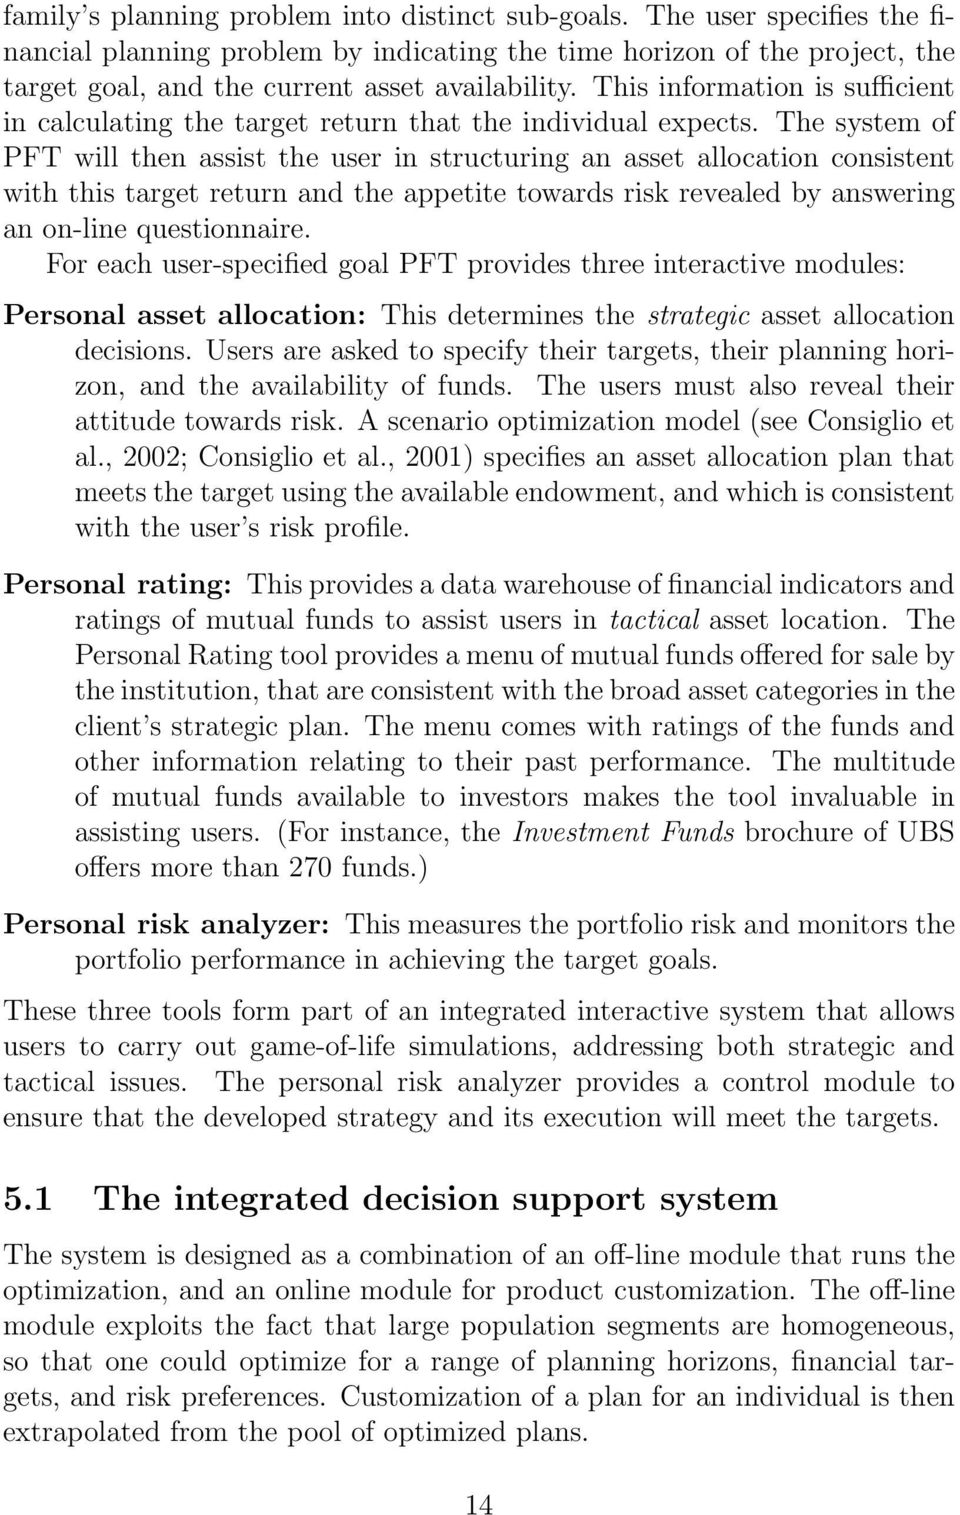 The system of PFT will then assist the user in structuring an asset allocation consistent with this target return and the appetite towards risk revealed by answering an on-line questionnaire.